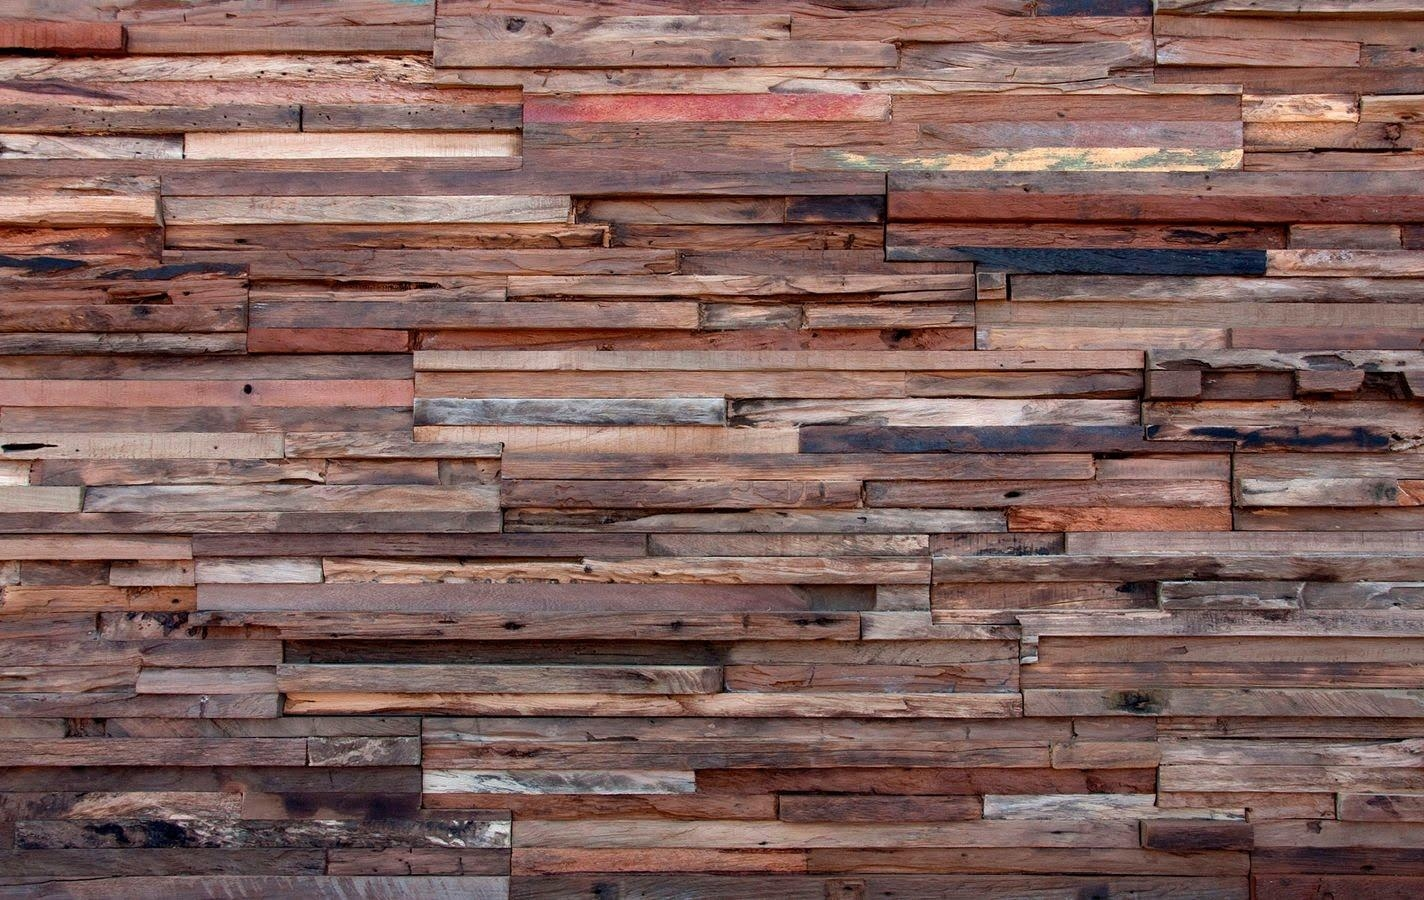 Wood Wall Paneling | Wood Wall Panel Art – Youtube Throughout Wooden Wall Art Panels (View 16 of 20)